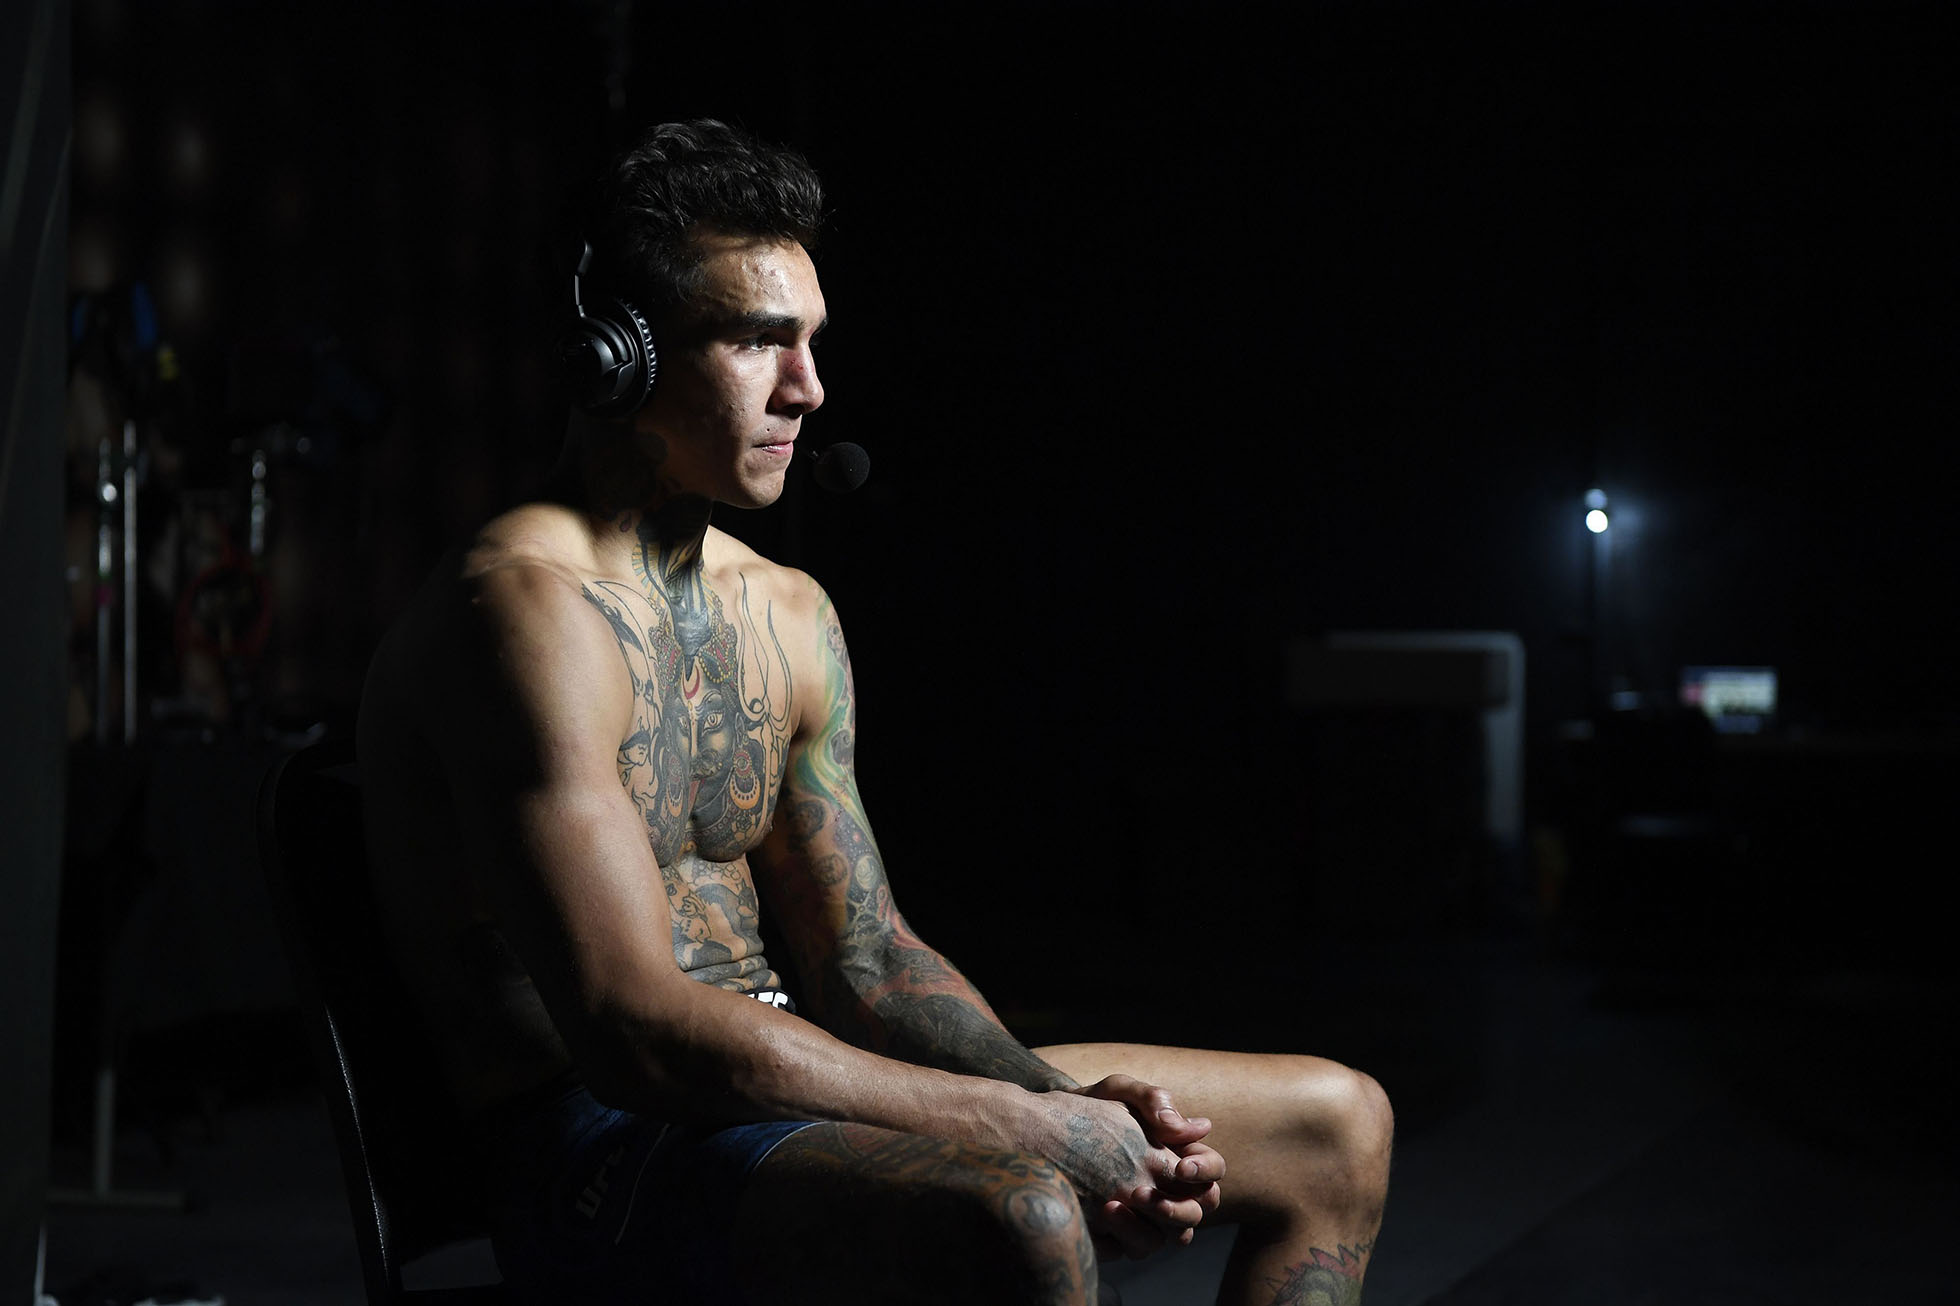 Andre Fili is interviewed backstage during the UFC Fight Night event at UFC APEX on June 13, 2020 in Las Vegas, Nevada. (Photo by Mike Roach/Zuffa LLC)